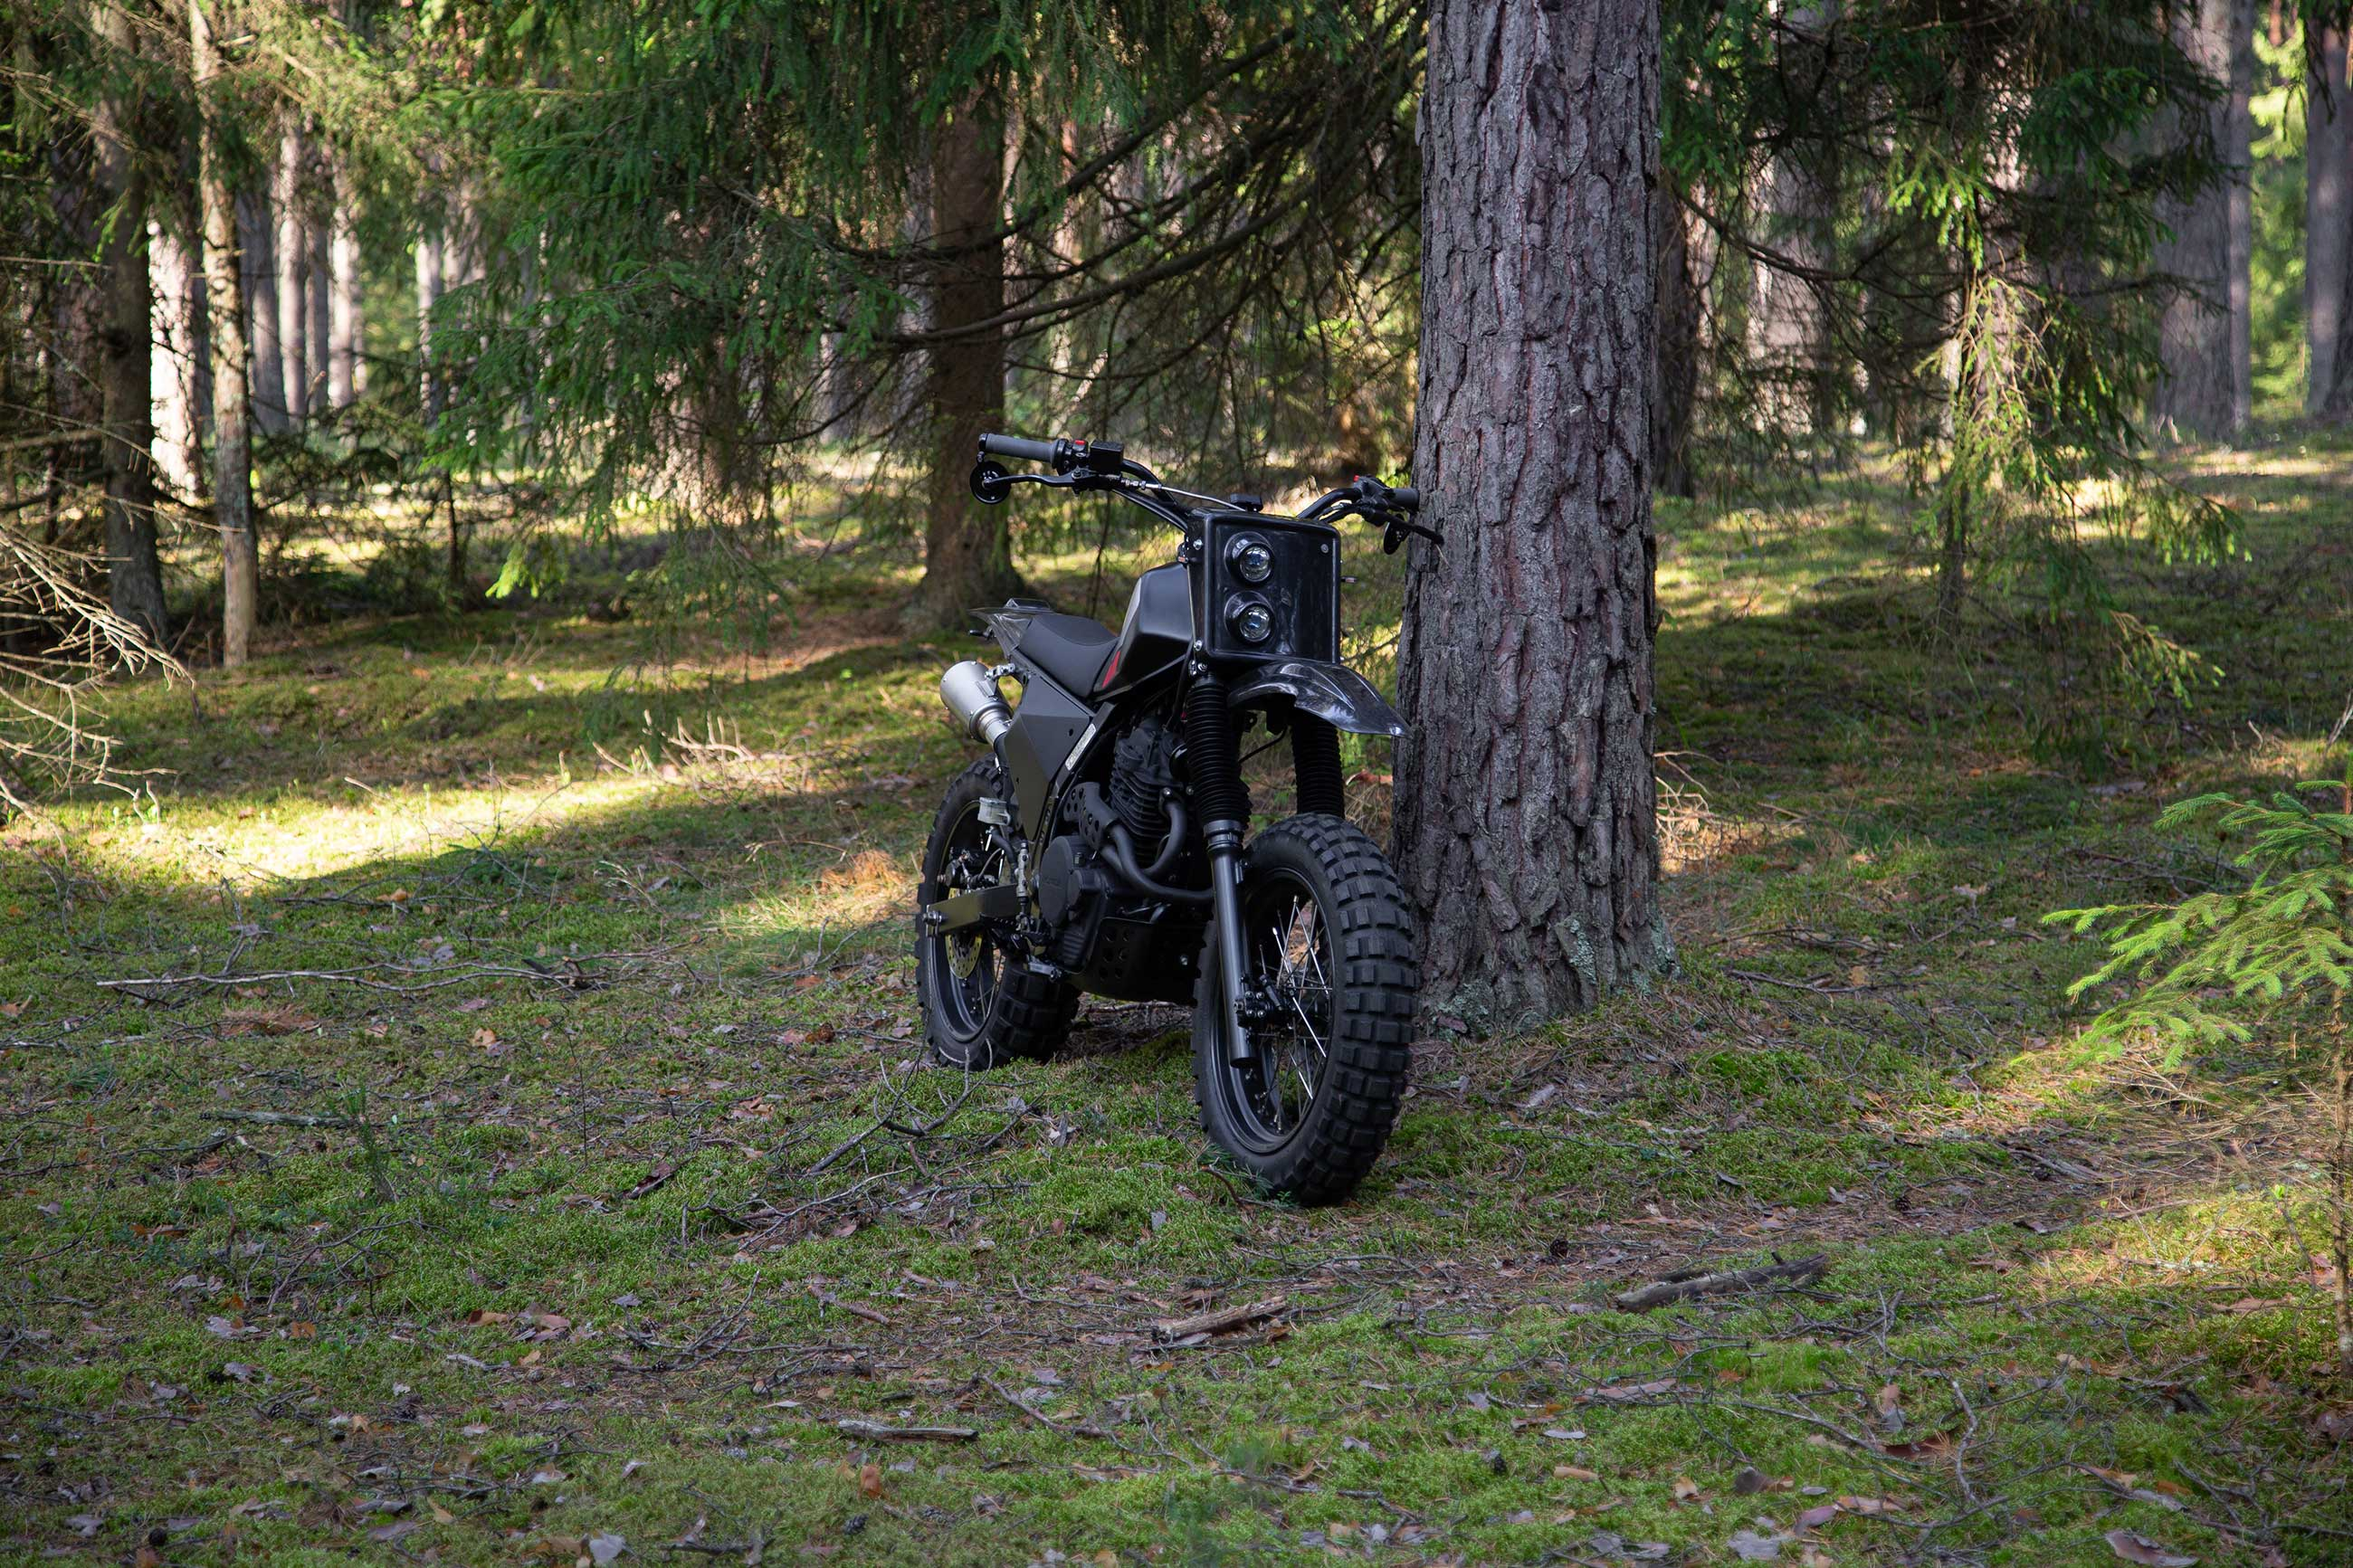 Honda NX650 Dirt Tracker/Scrambler by Differs